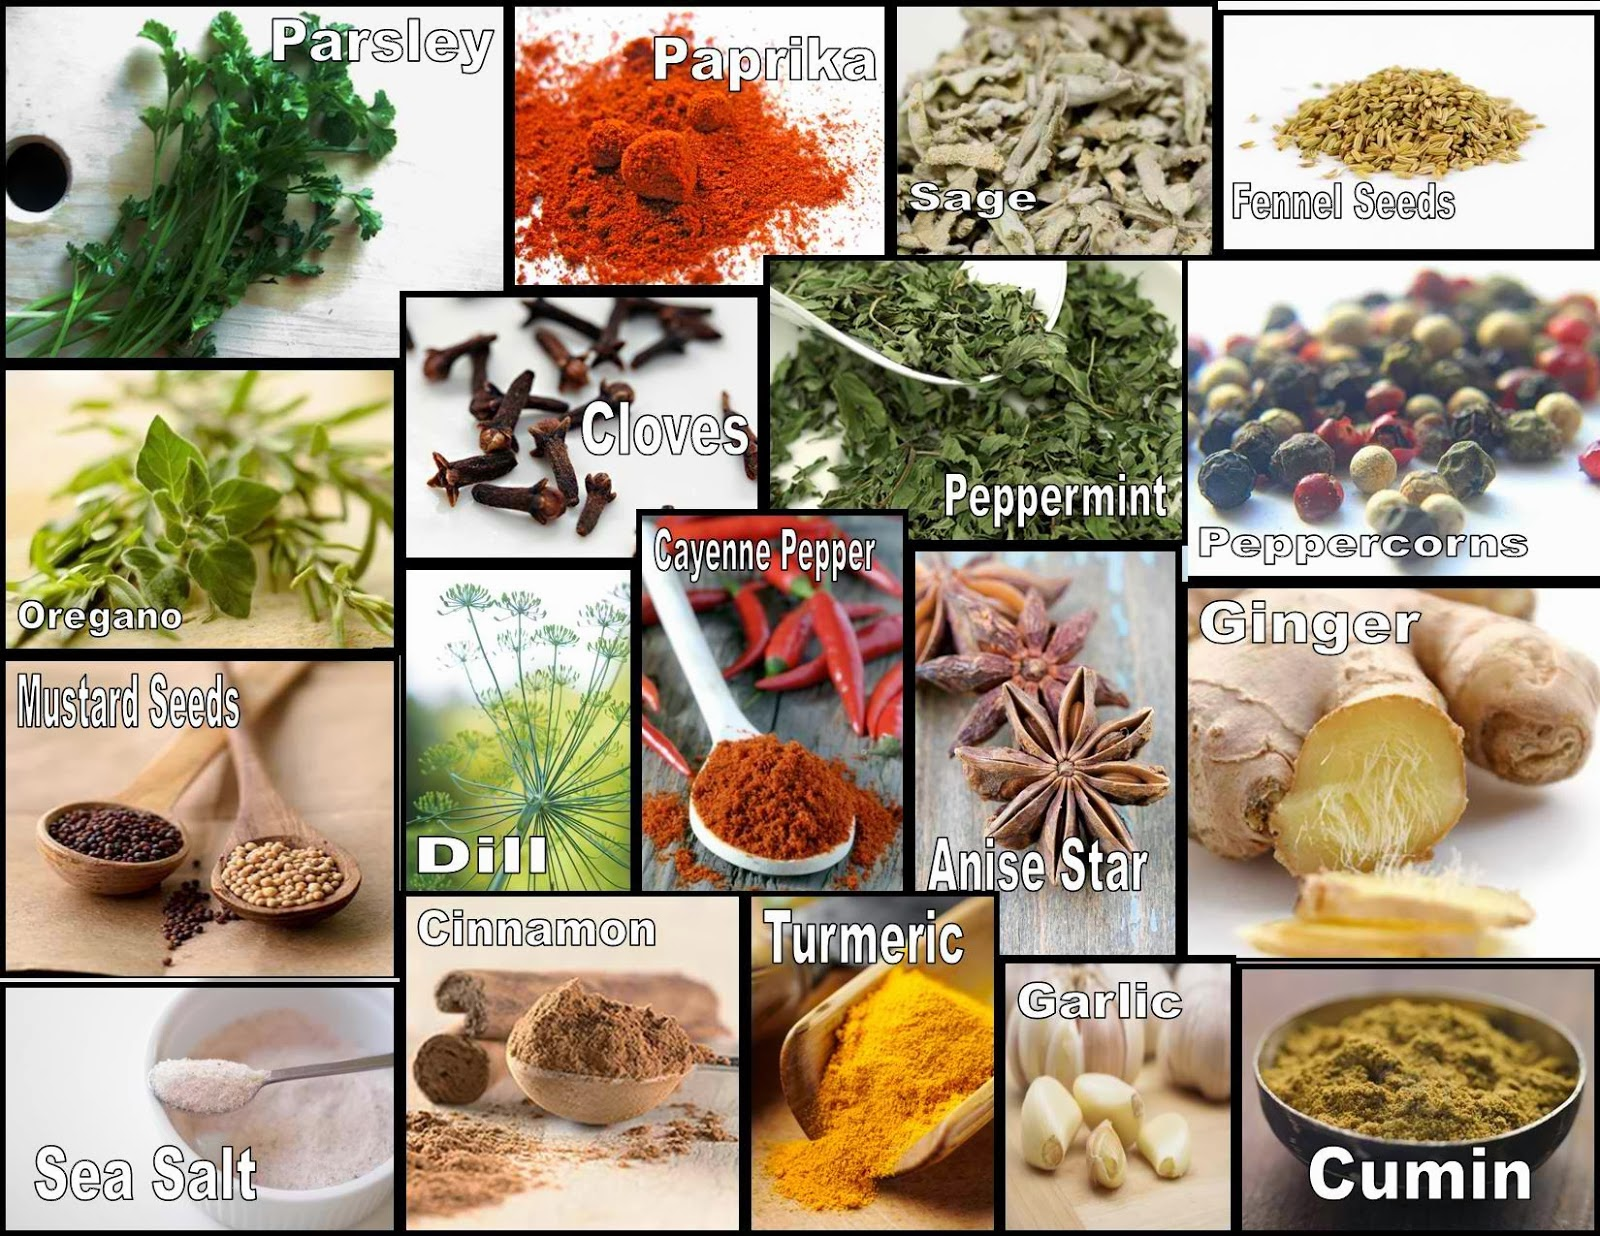 7 medicinal herbs and spices that Herbs refers to the leafy green or flowering parts of a plant (either fresh or dried), they are used for food, flavoring, medicine, or fragrances for their savory or aromatic properties a spice is a seed, fruit, root, bark, or other plant substance primarily used for flavoring, coloring or preserving food.